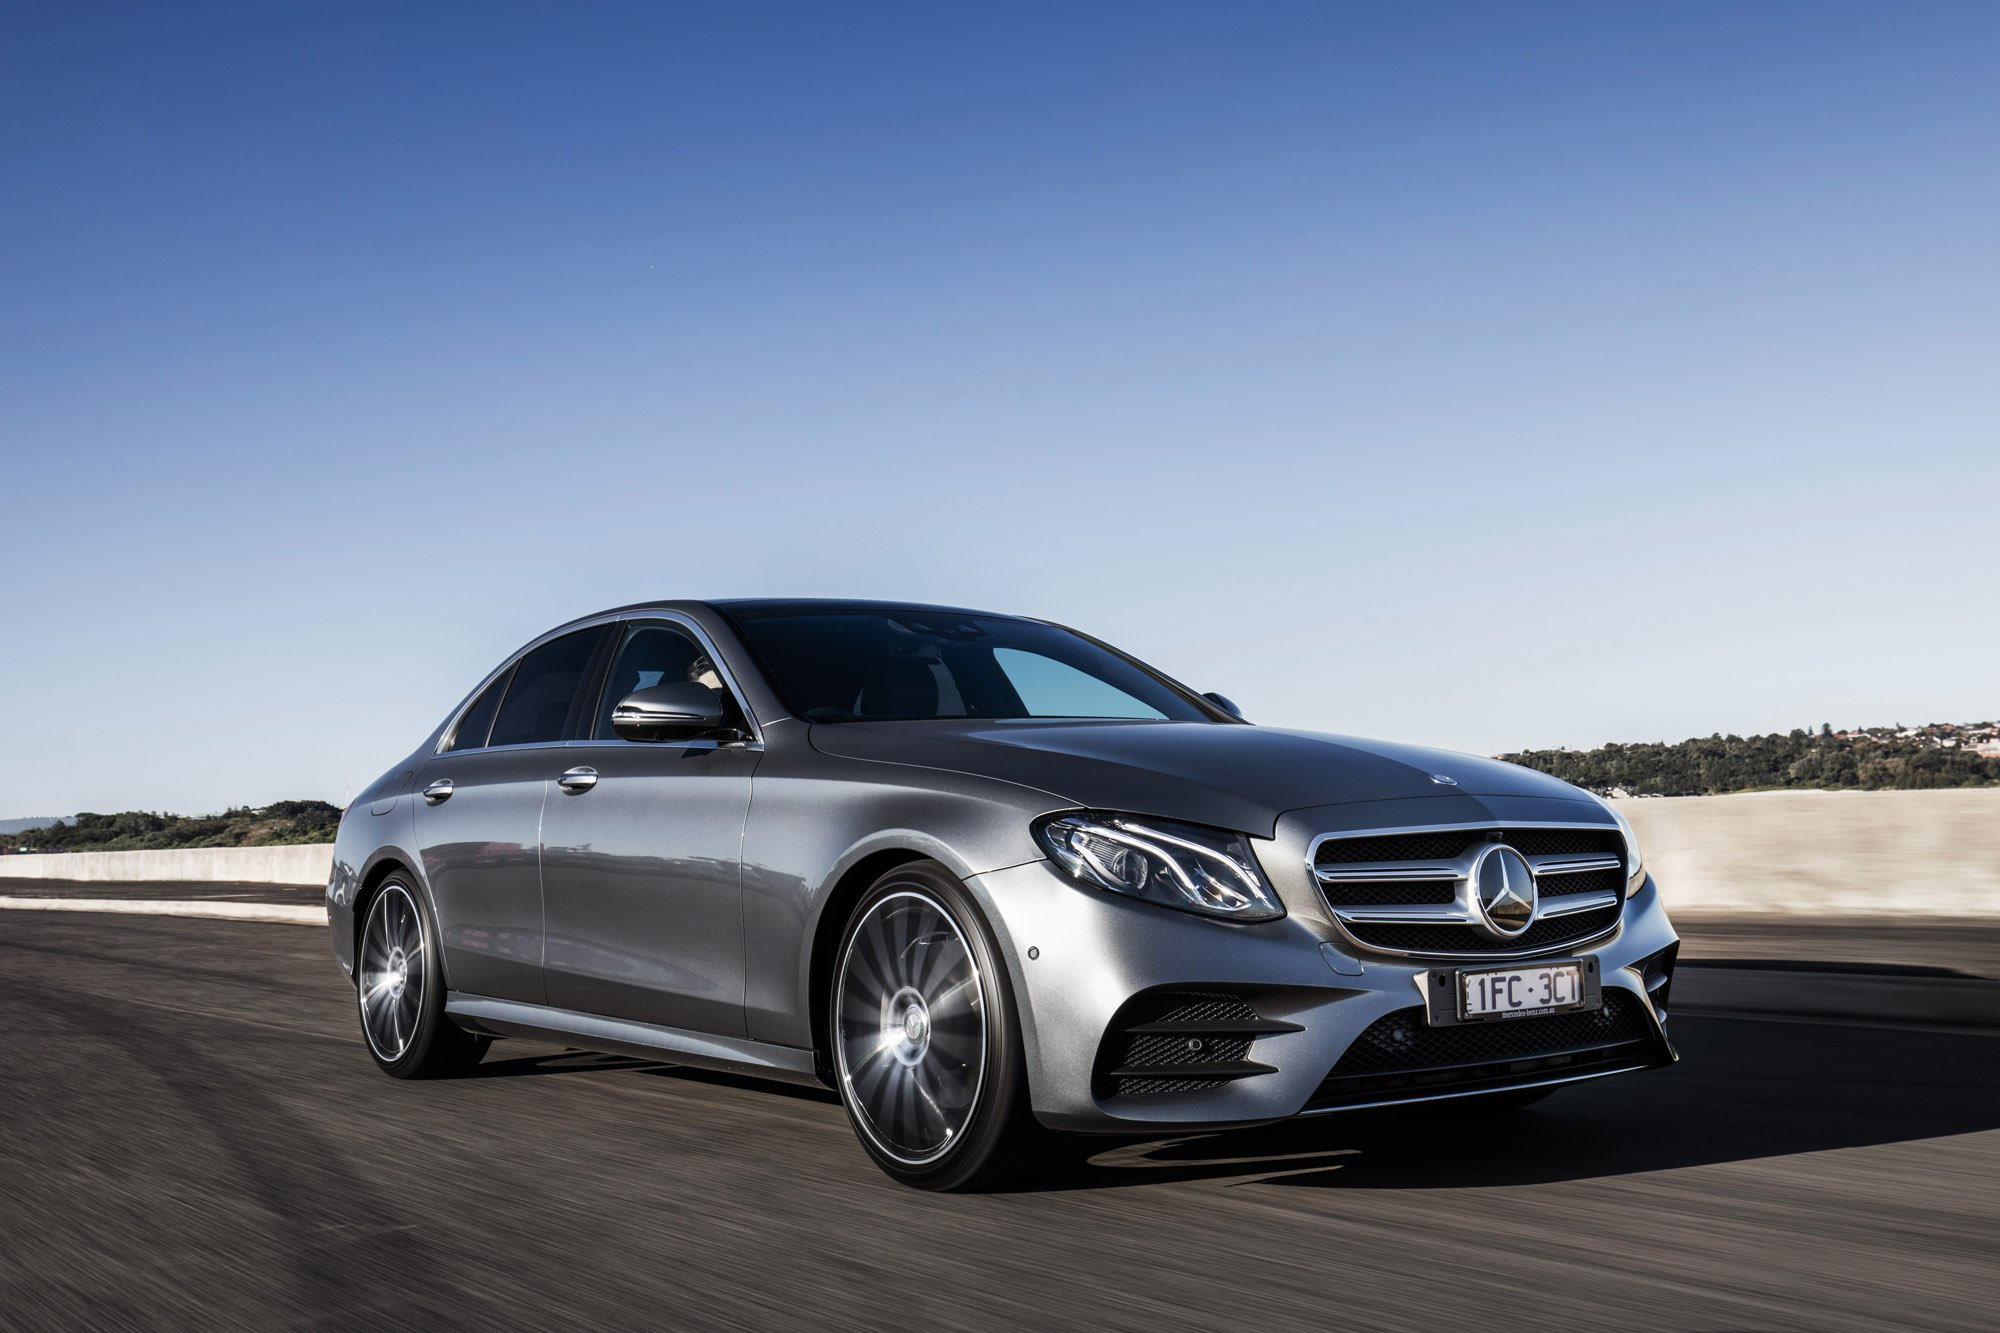 2016 mercedes benz e class review photos caradvice for Mercedes benz average price